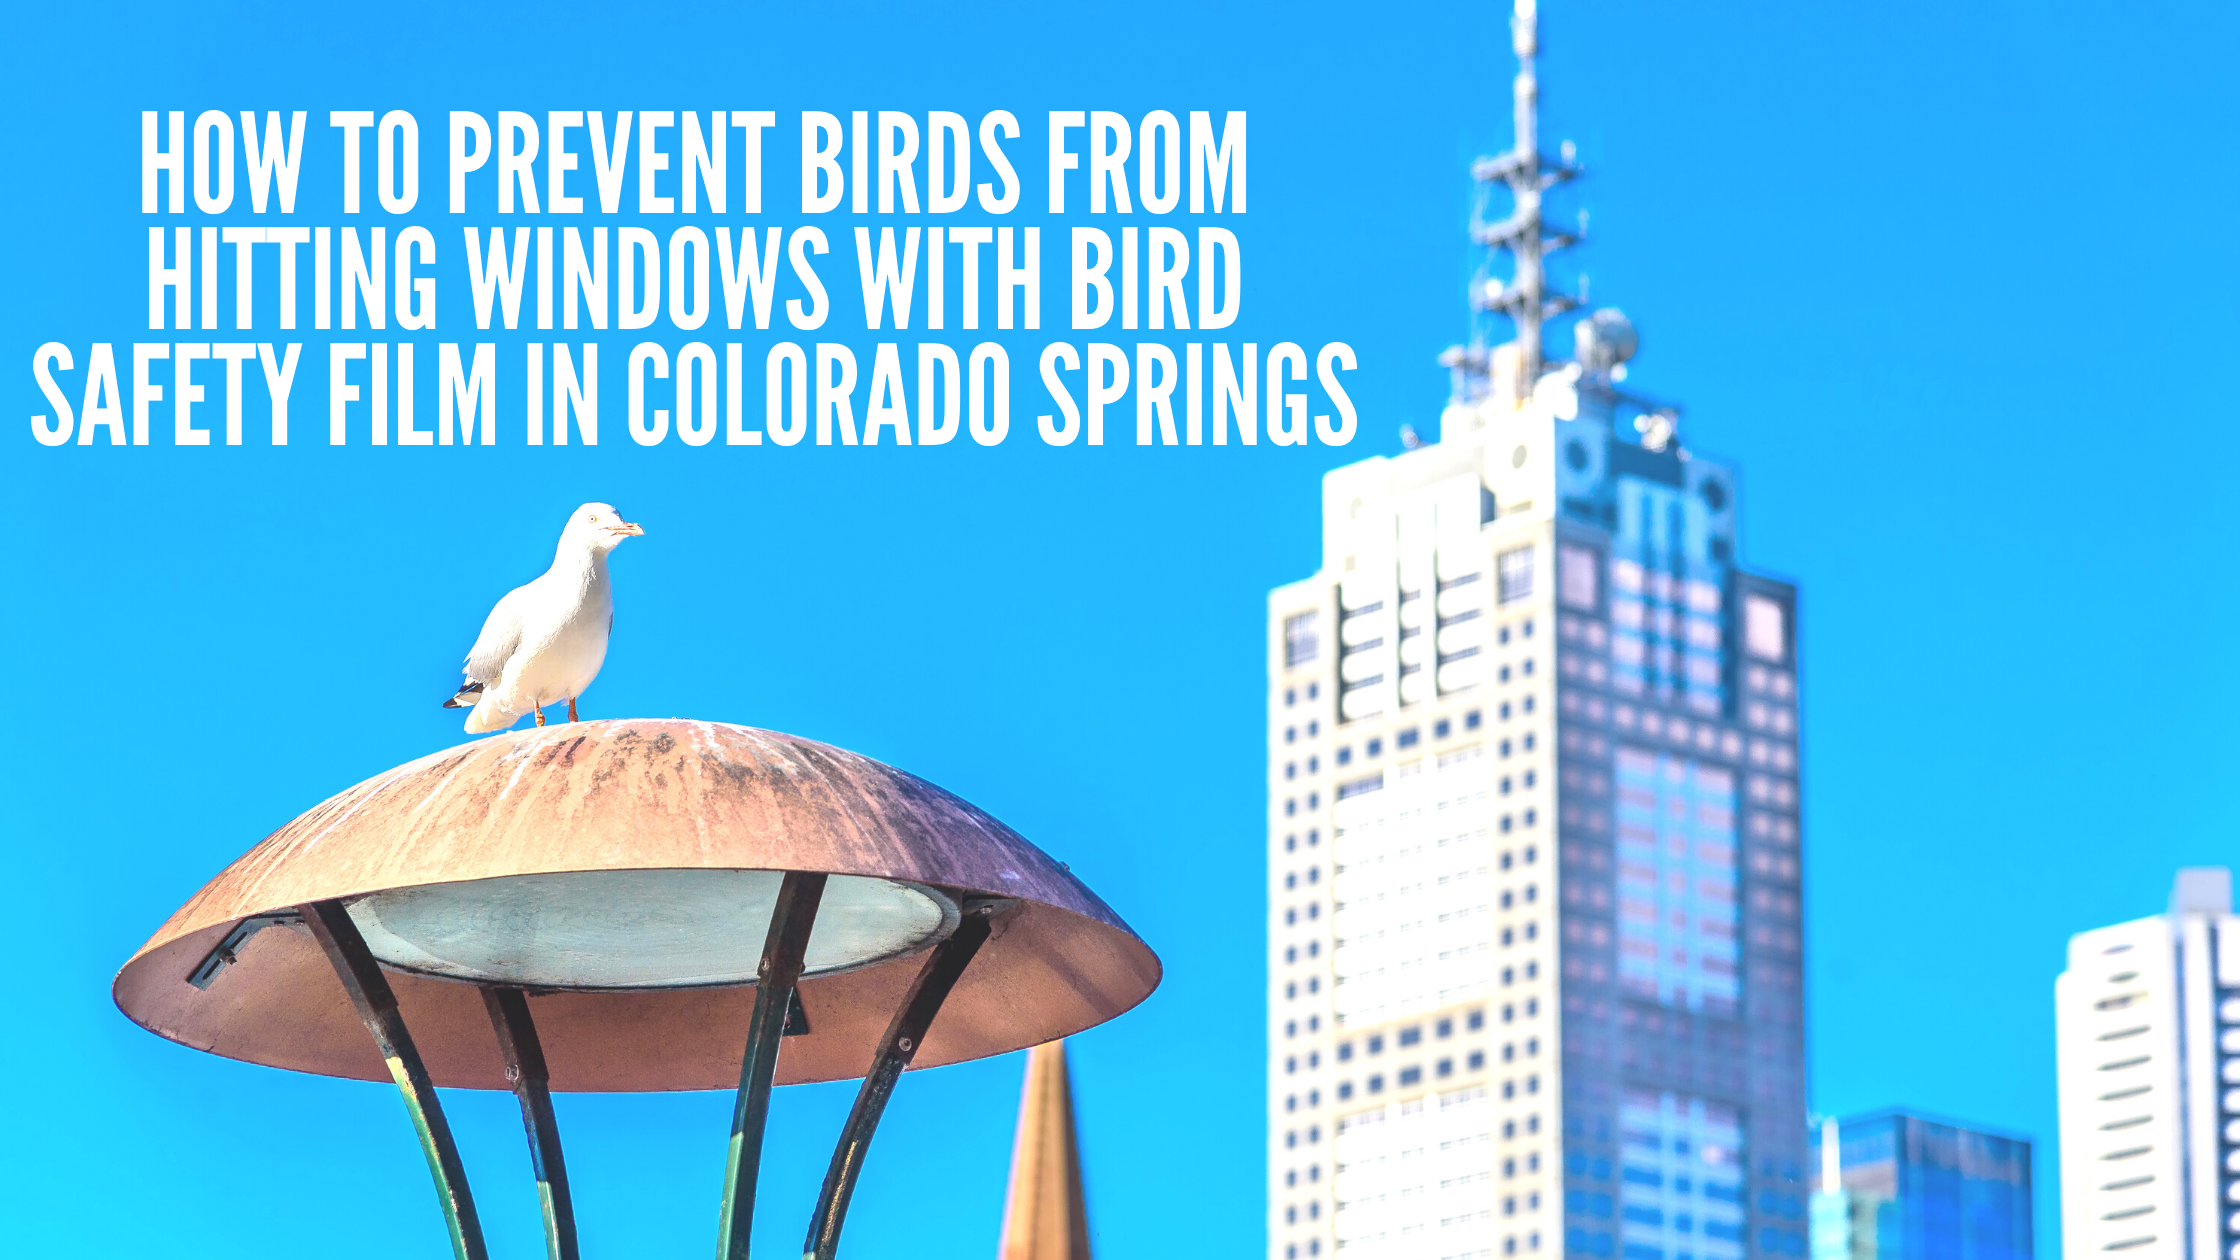 How to Prevent Birds from Hitting Windows with Bird Safety Film in Colorado Springs